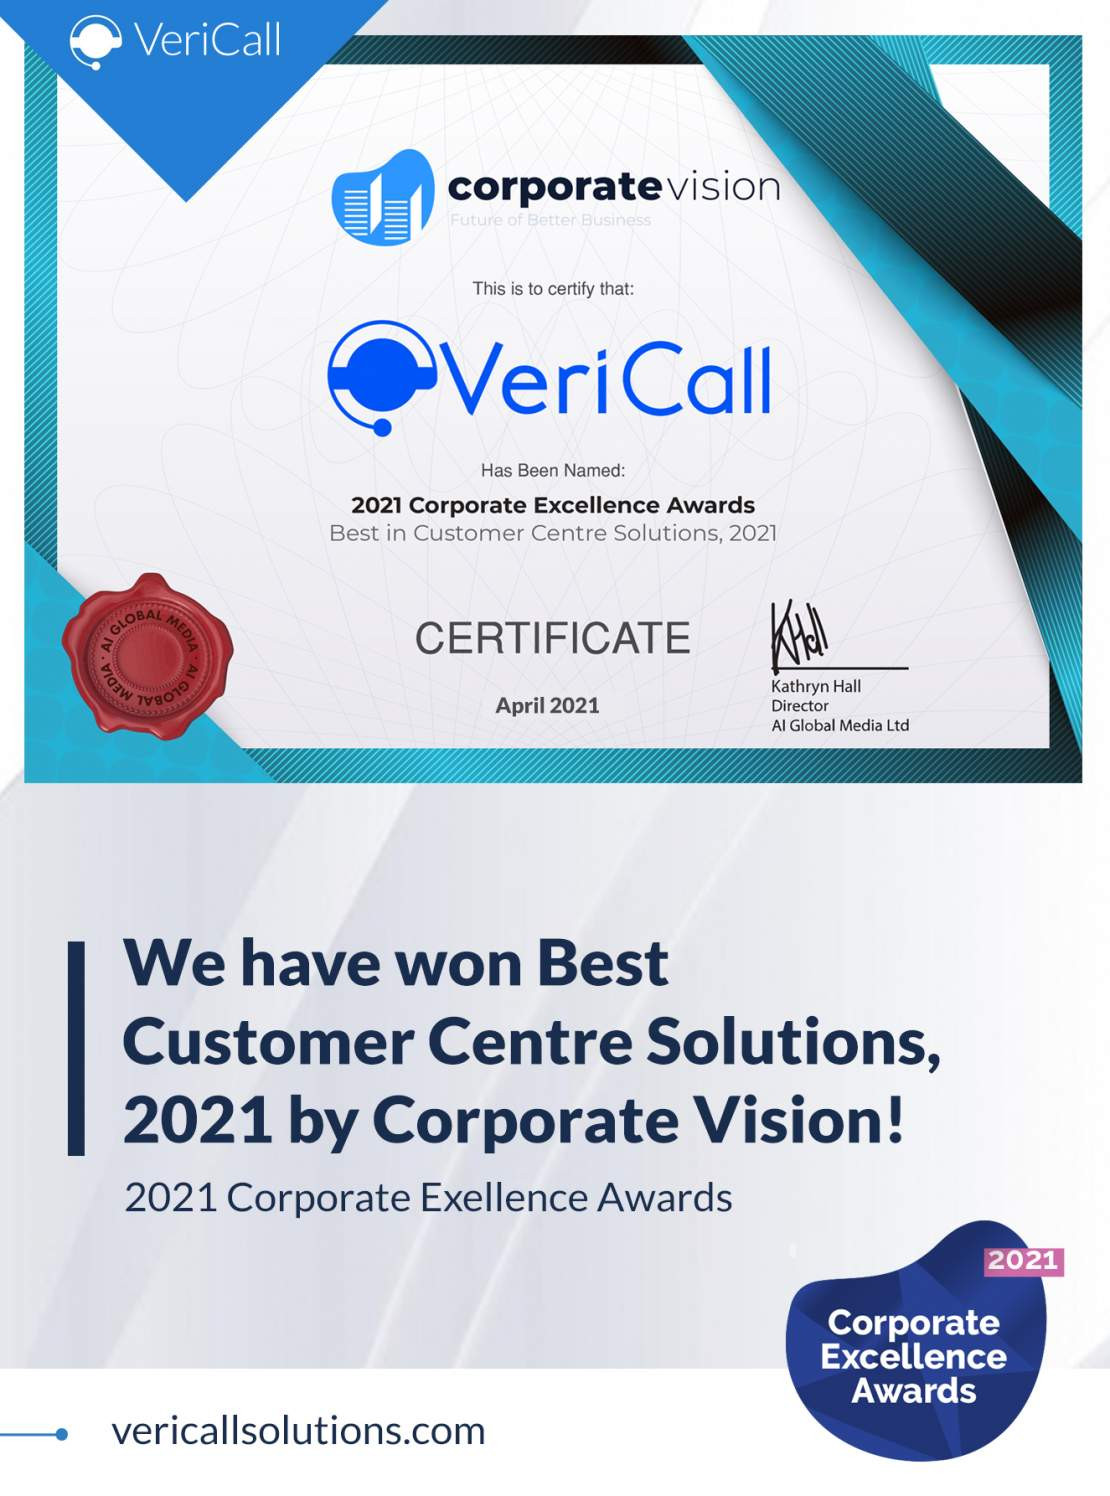 VeriCall Wins Best  In Customer Centre Solutions Award in AI Global Media's 2021 Business Elite Awards